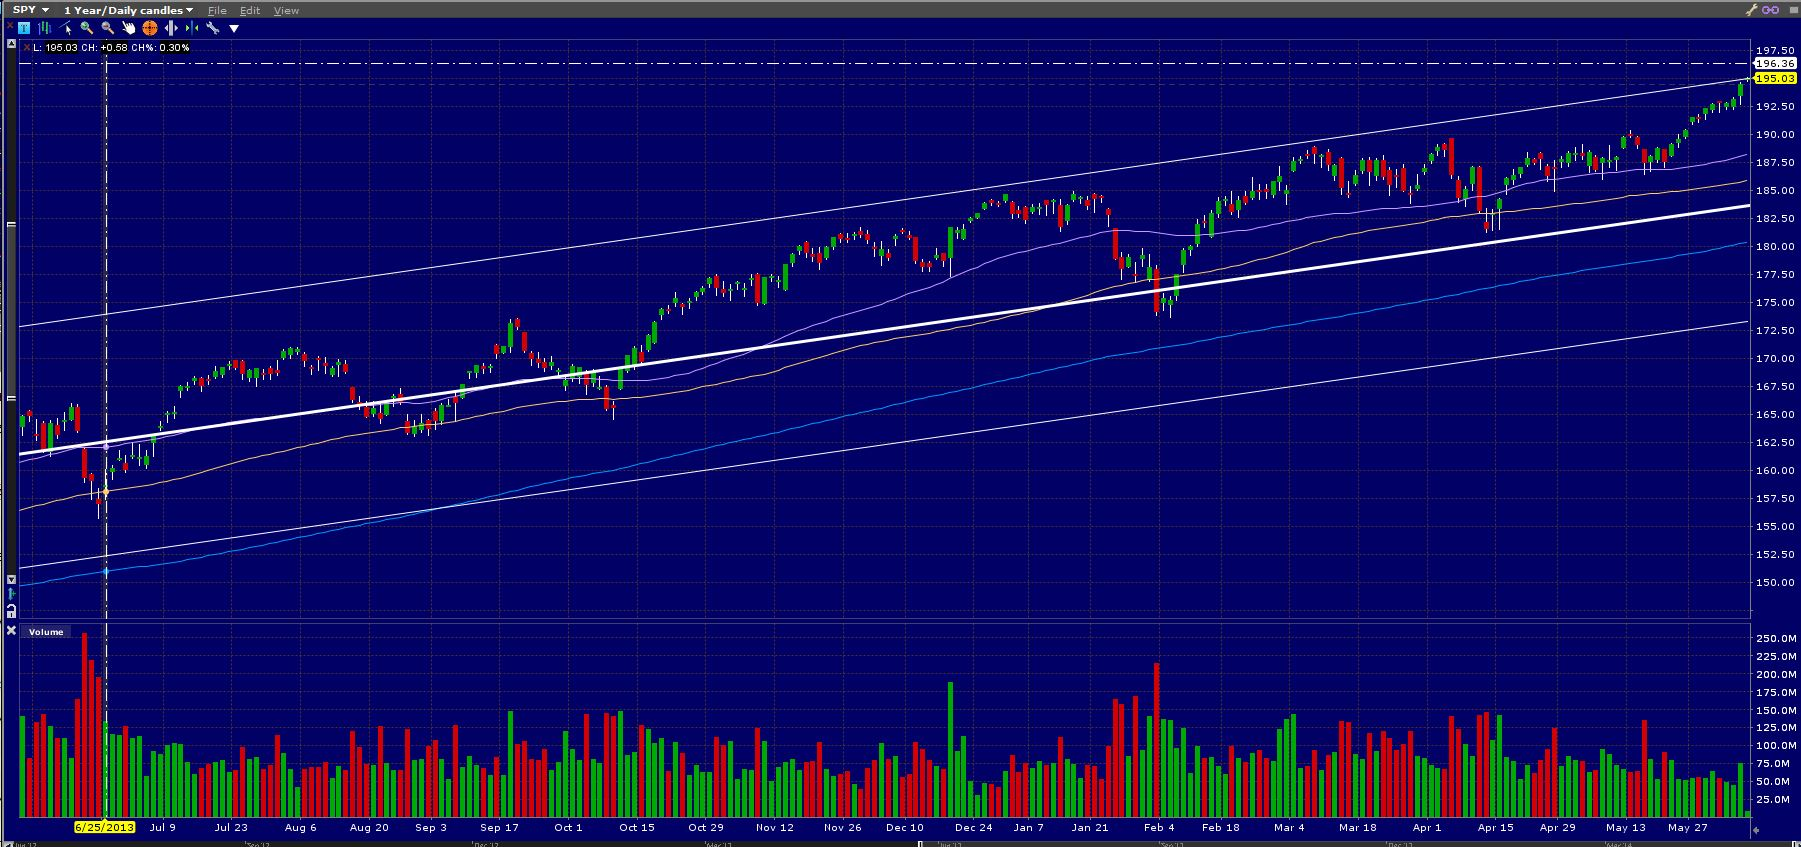 SPY Top Channel Line